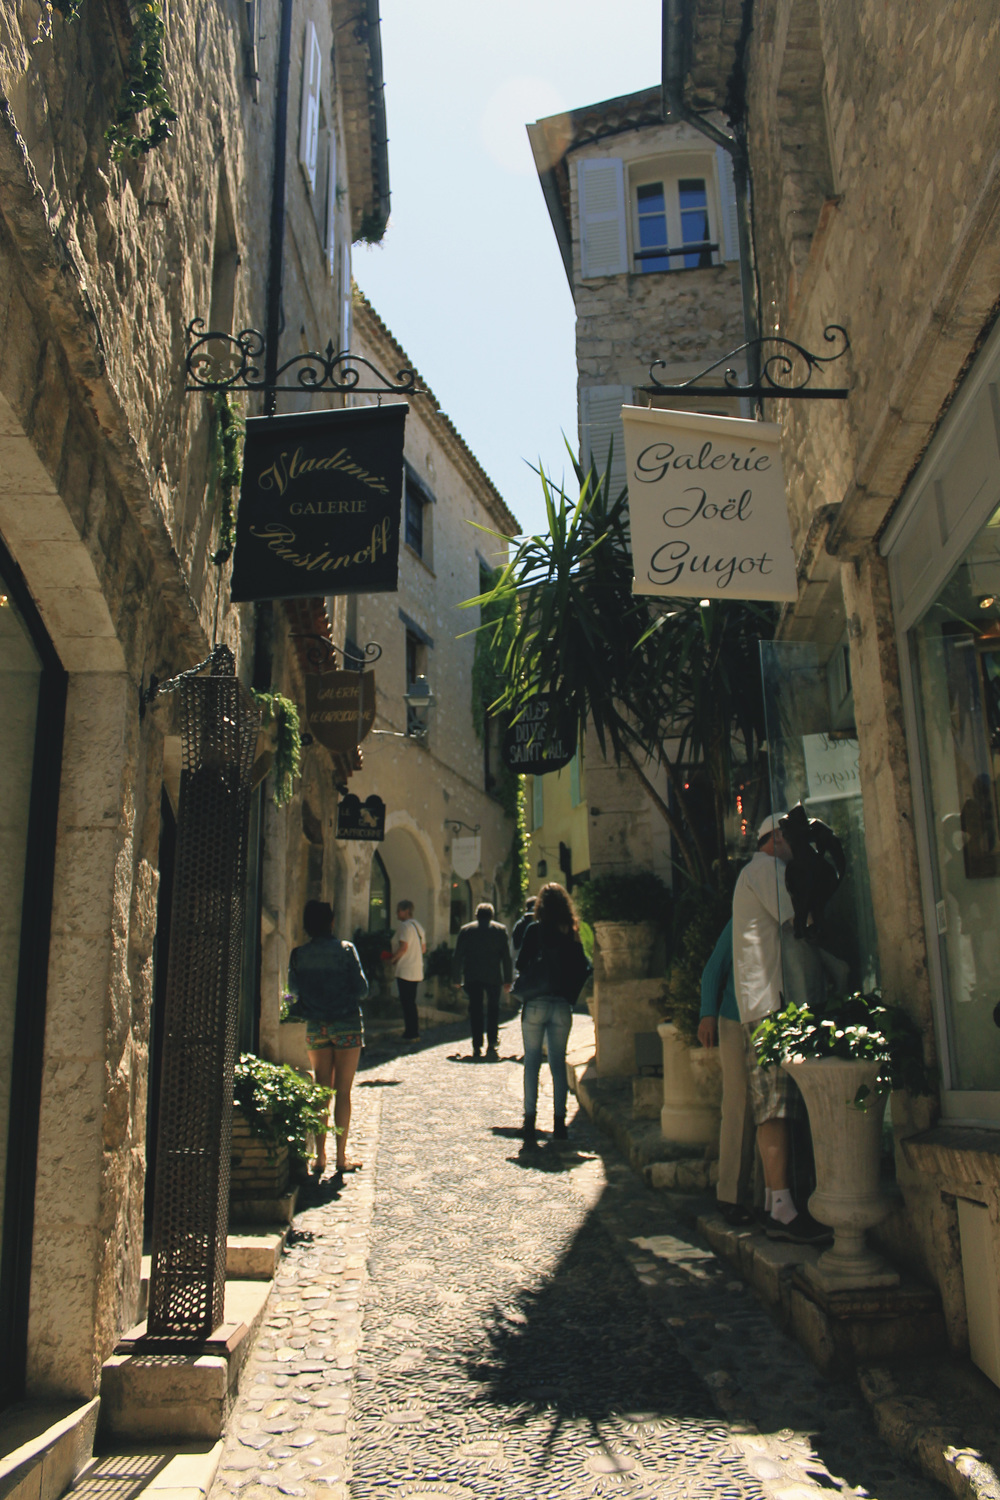 saint paul de vence france spring shops street